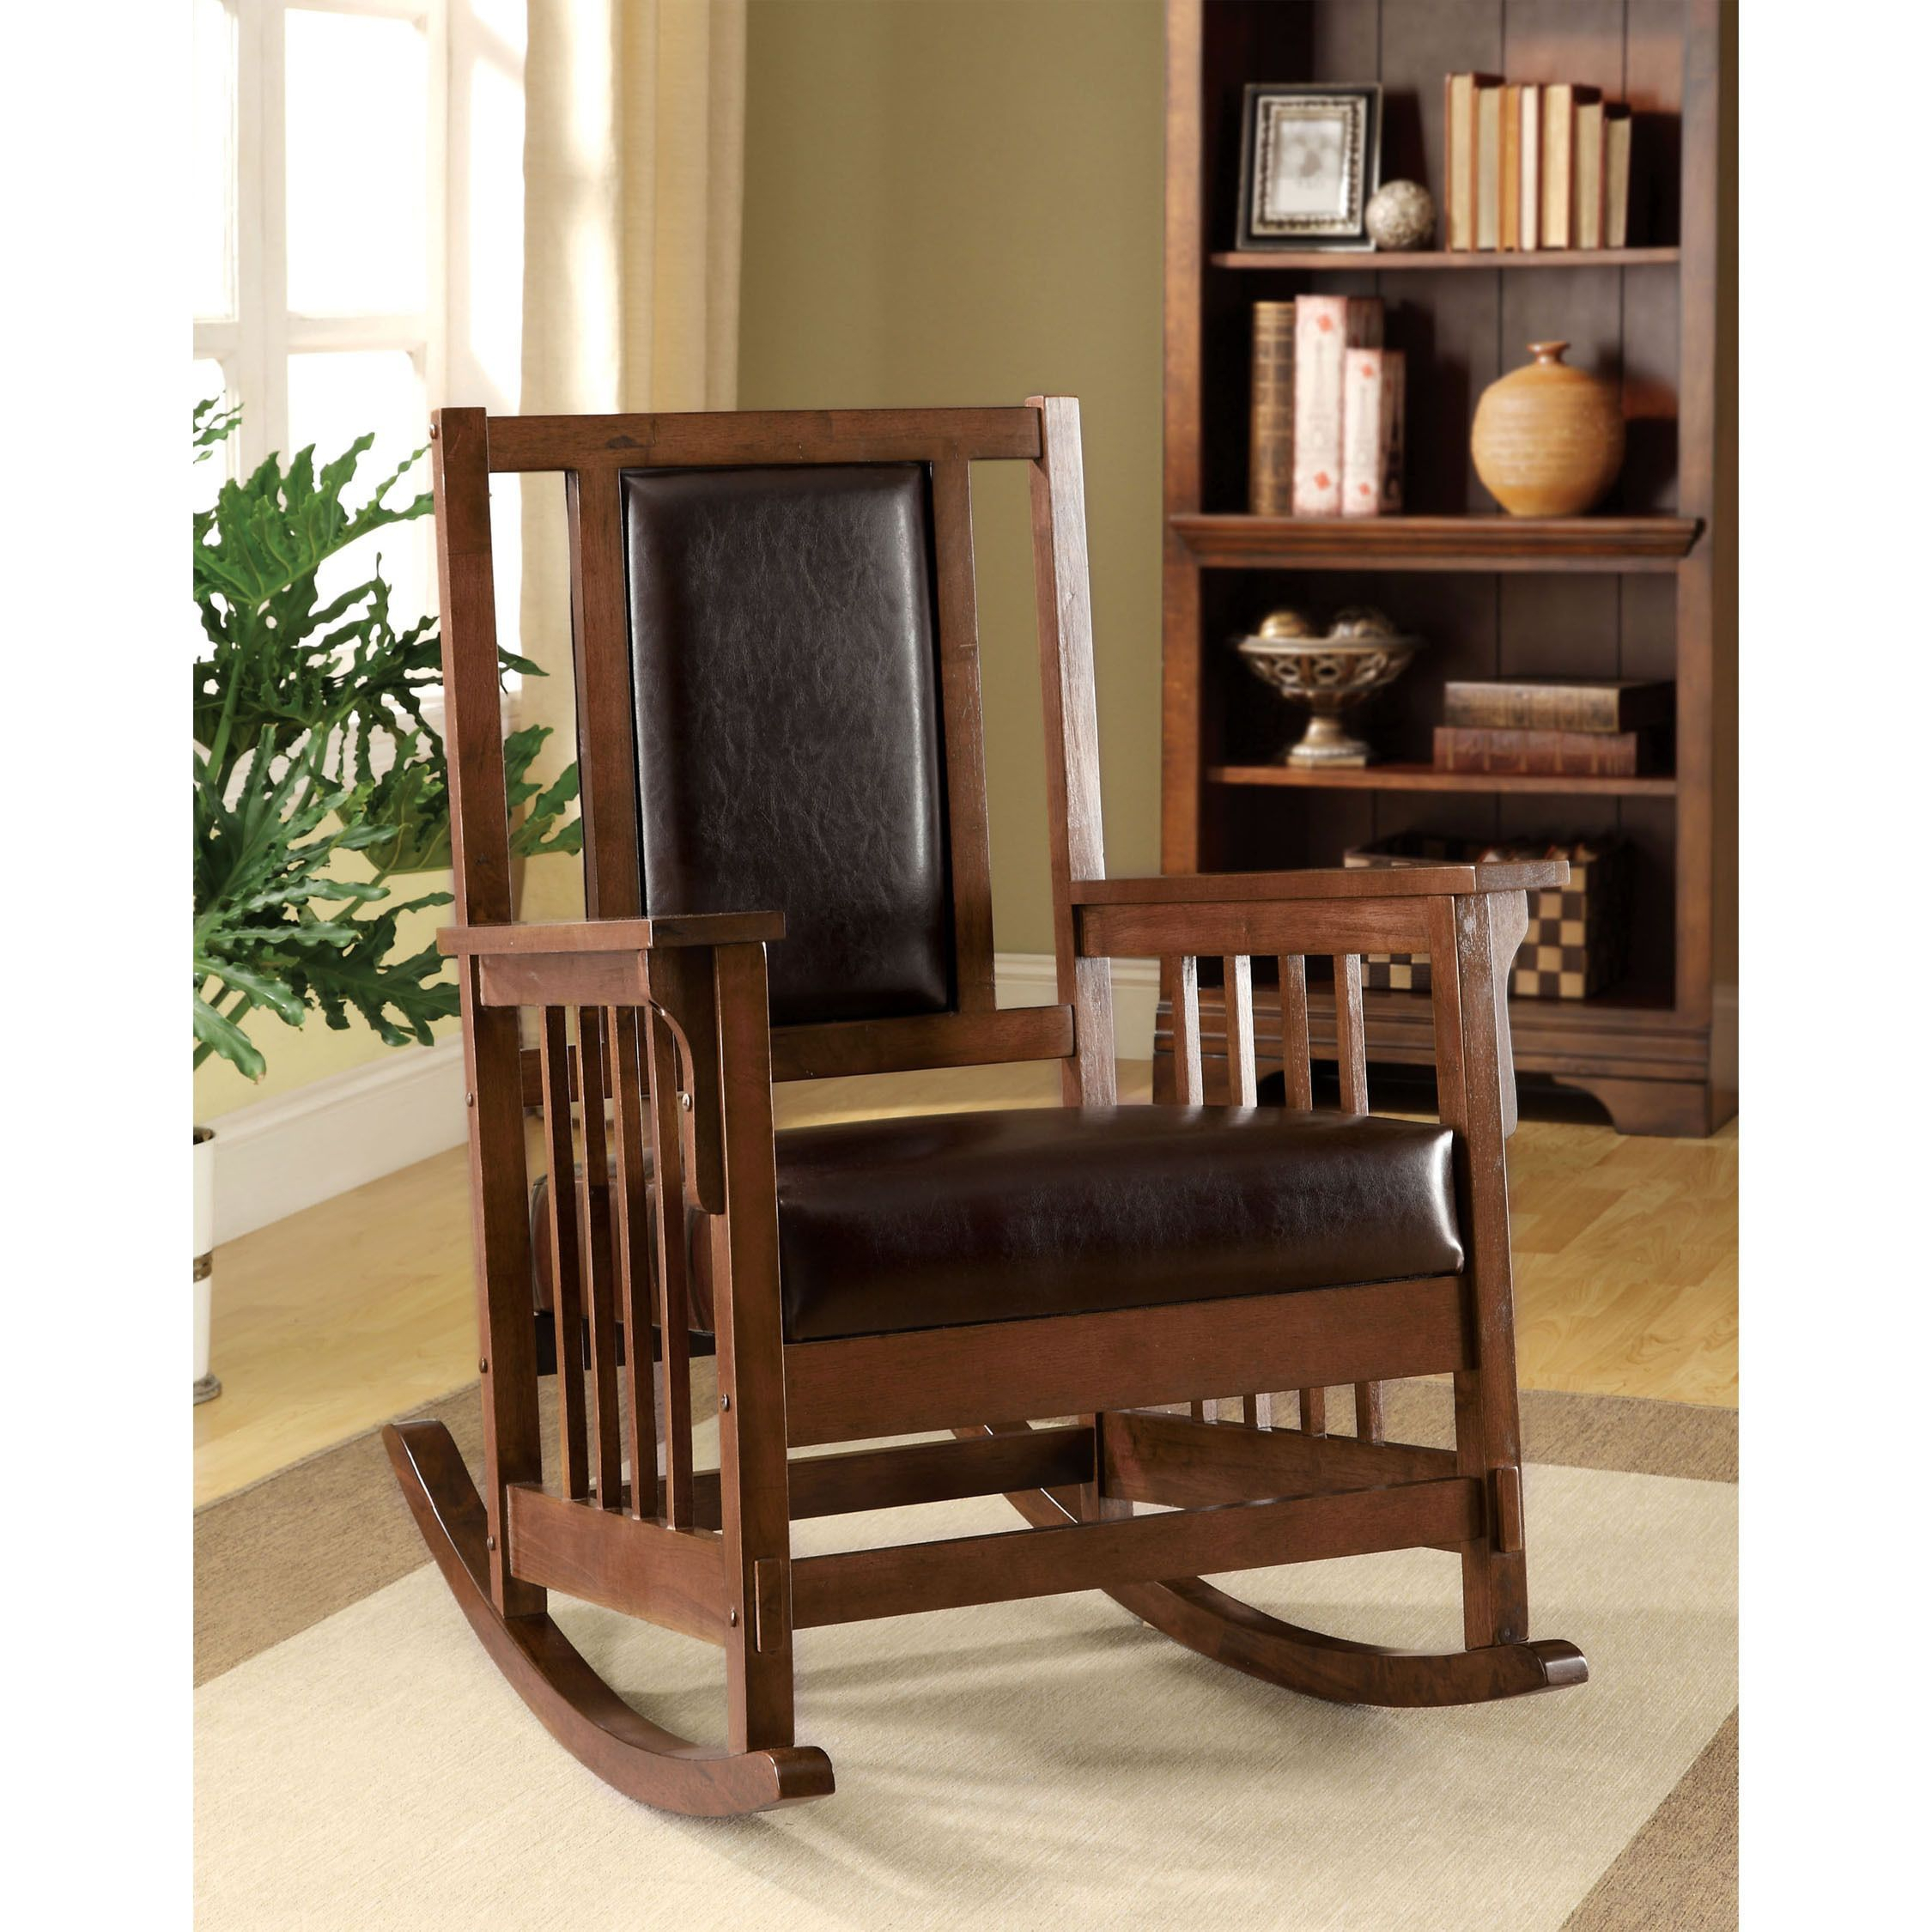 Add A Twist To The Classic Rocking Chair With The Mission Intended For Espresso Brown Rocking Chairs (#1 of 20)